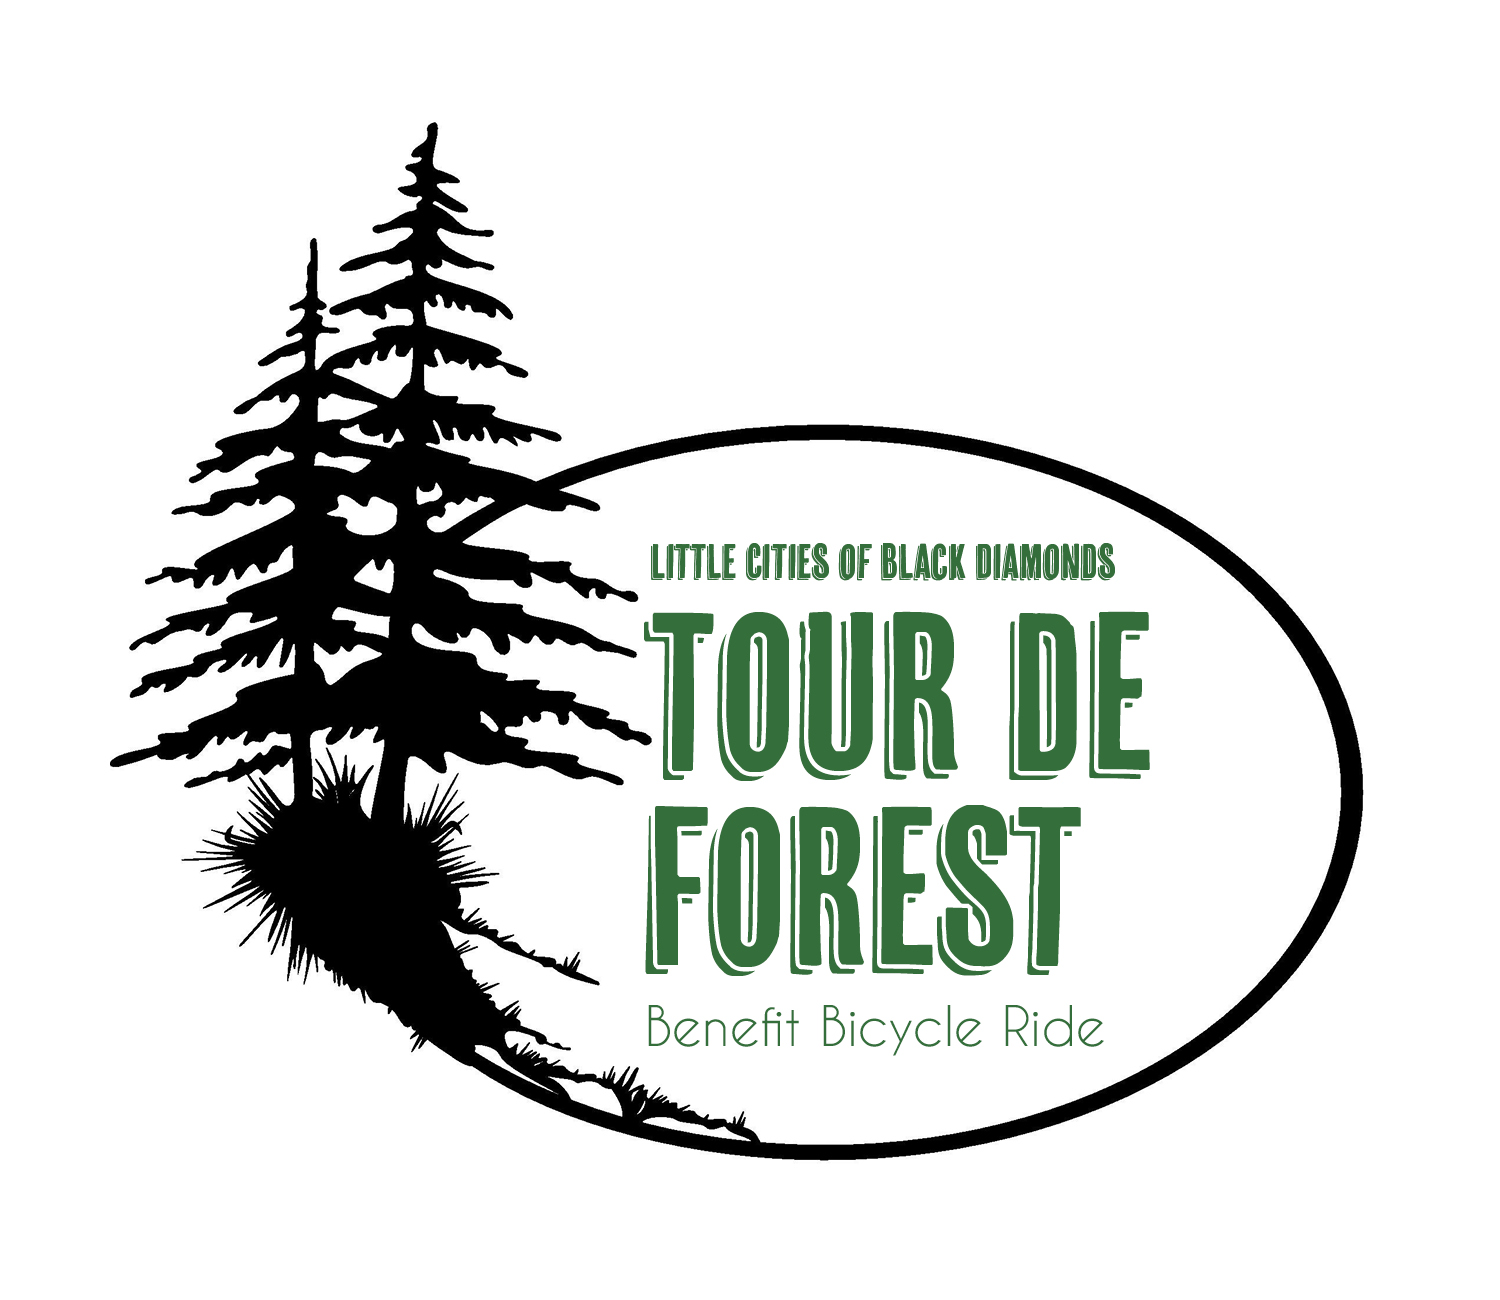 Tour de Forest Benefit Bicycle Ride